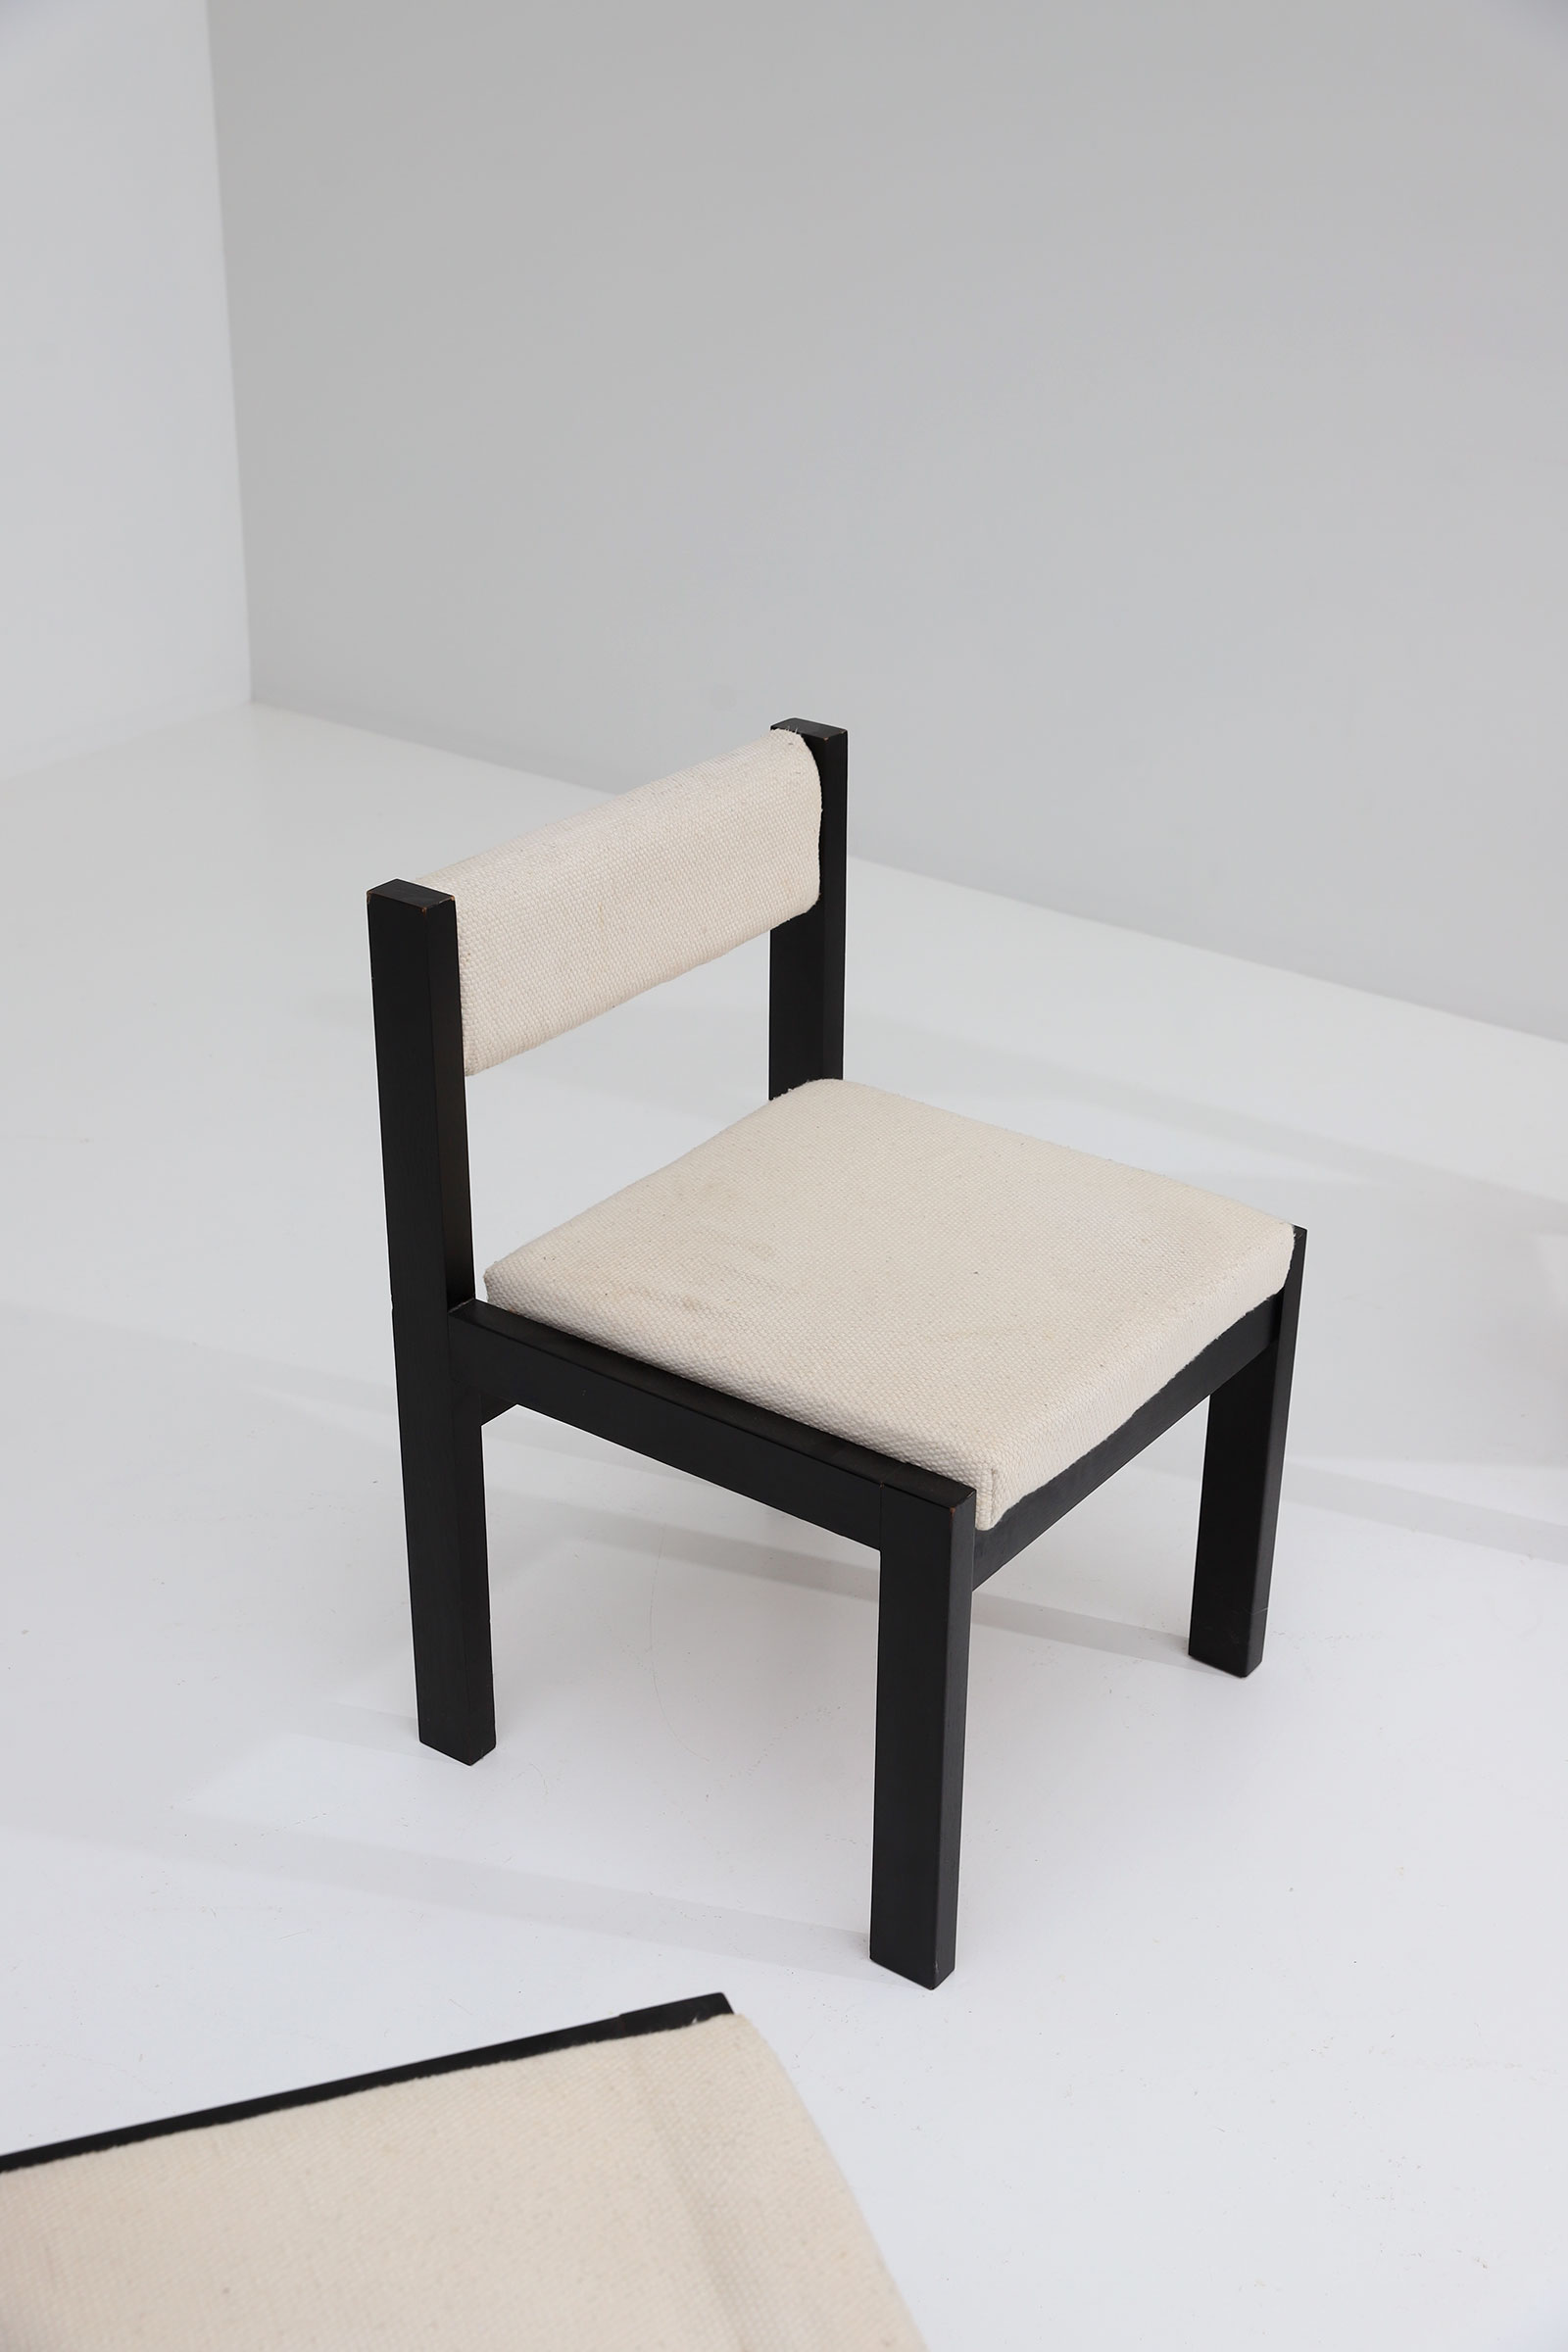 6 chairsimage 6